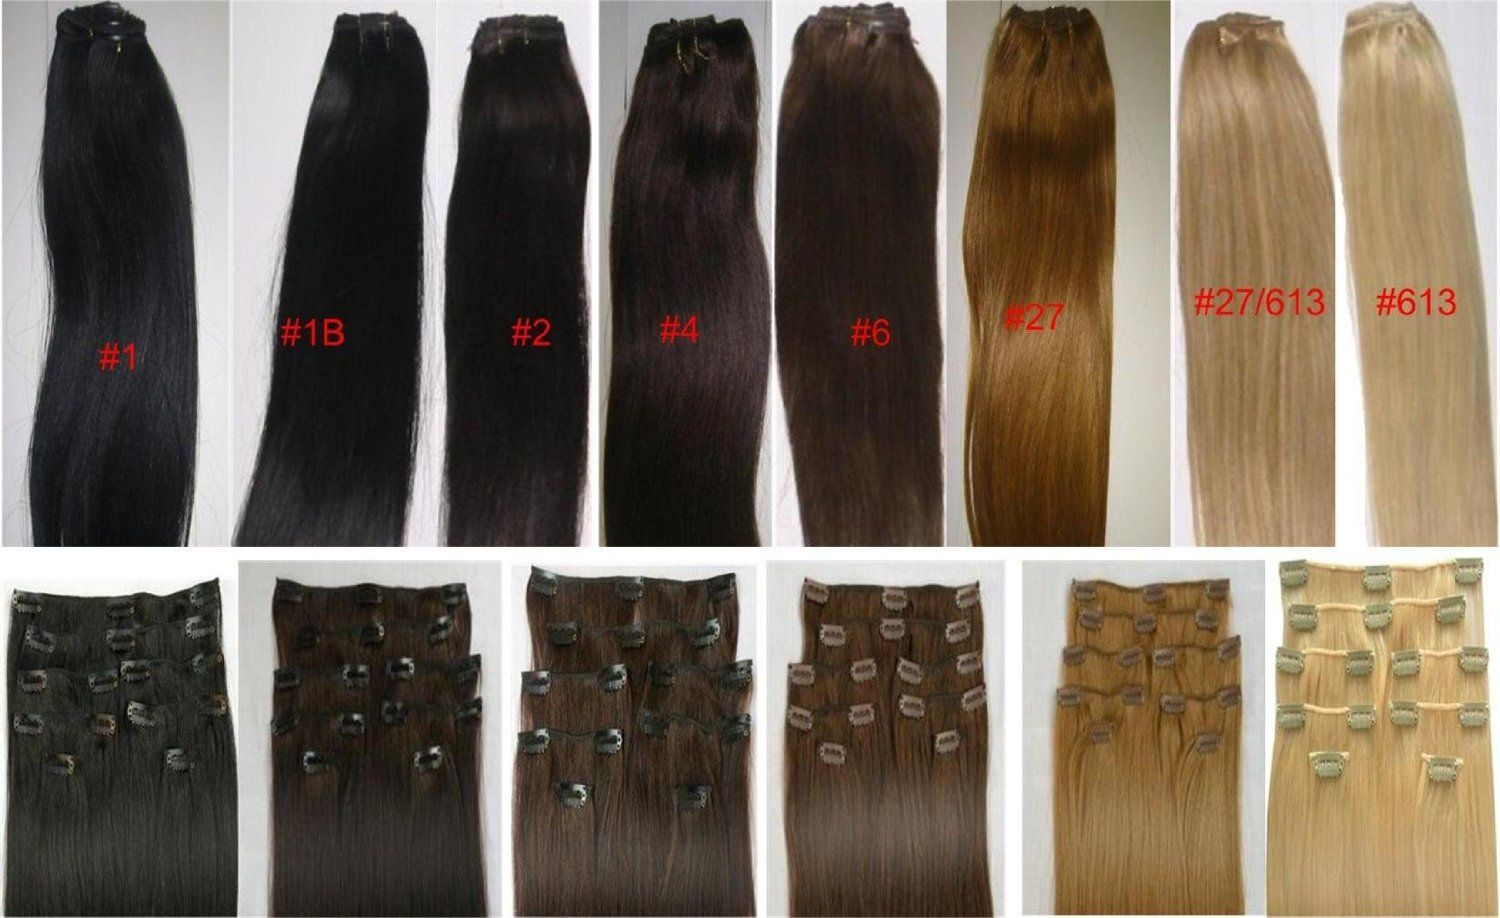 "18"" Clip in human hair extensions, 10pcs, 100g"